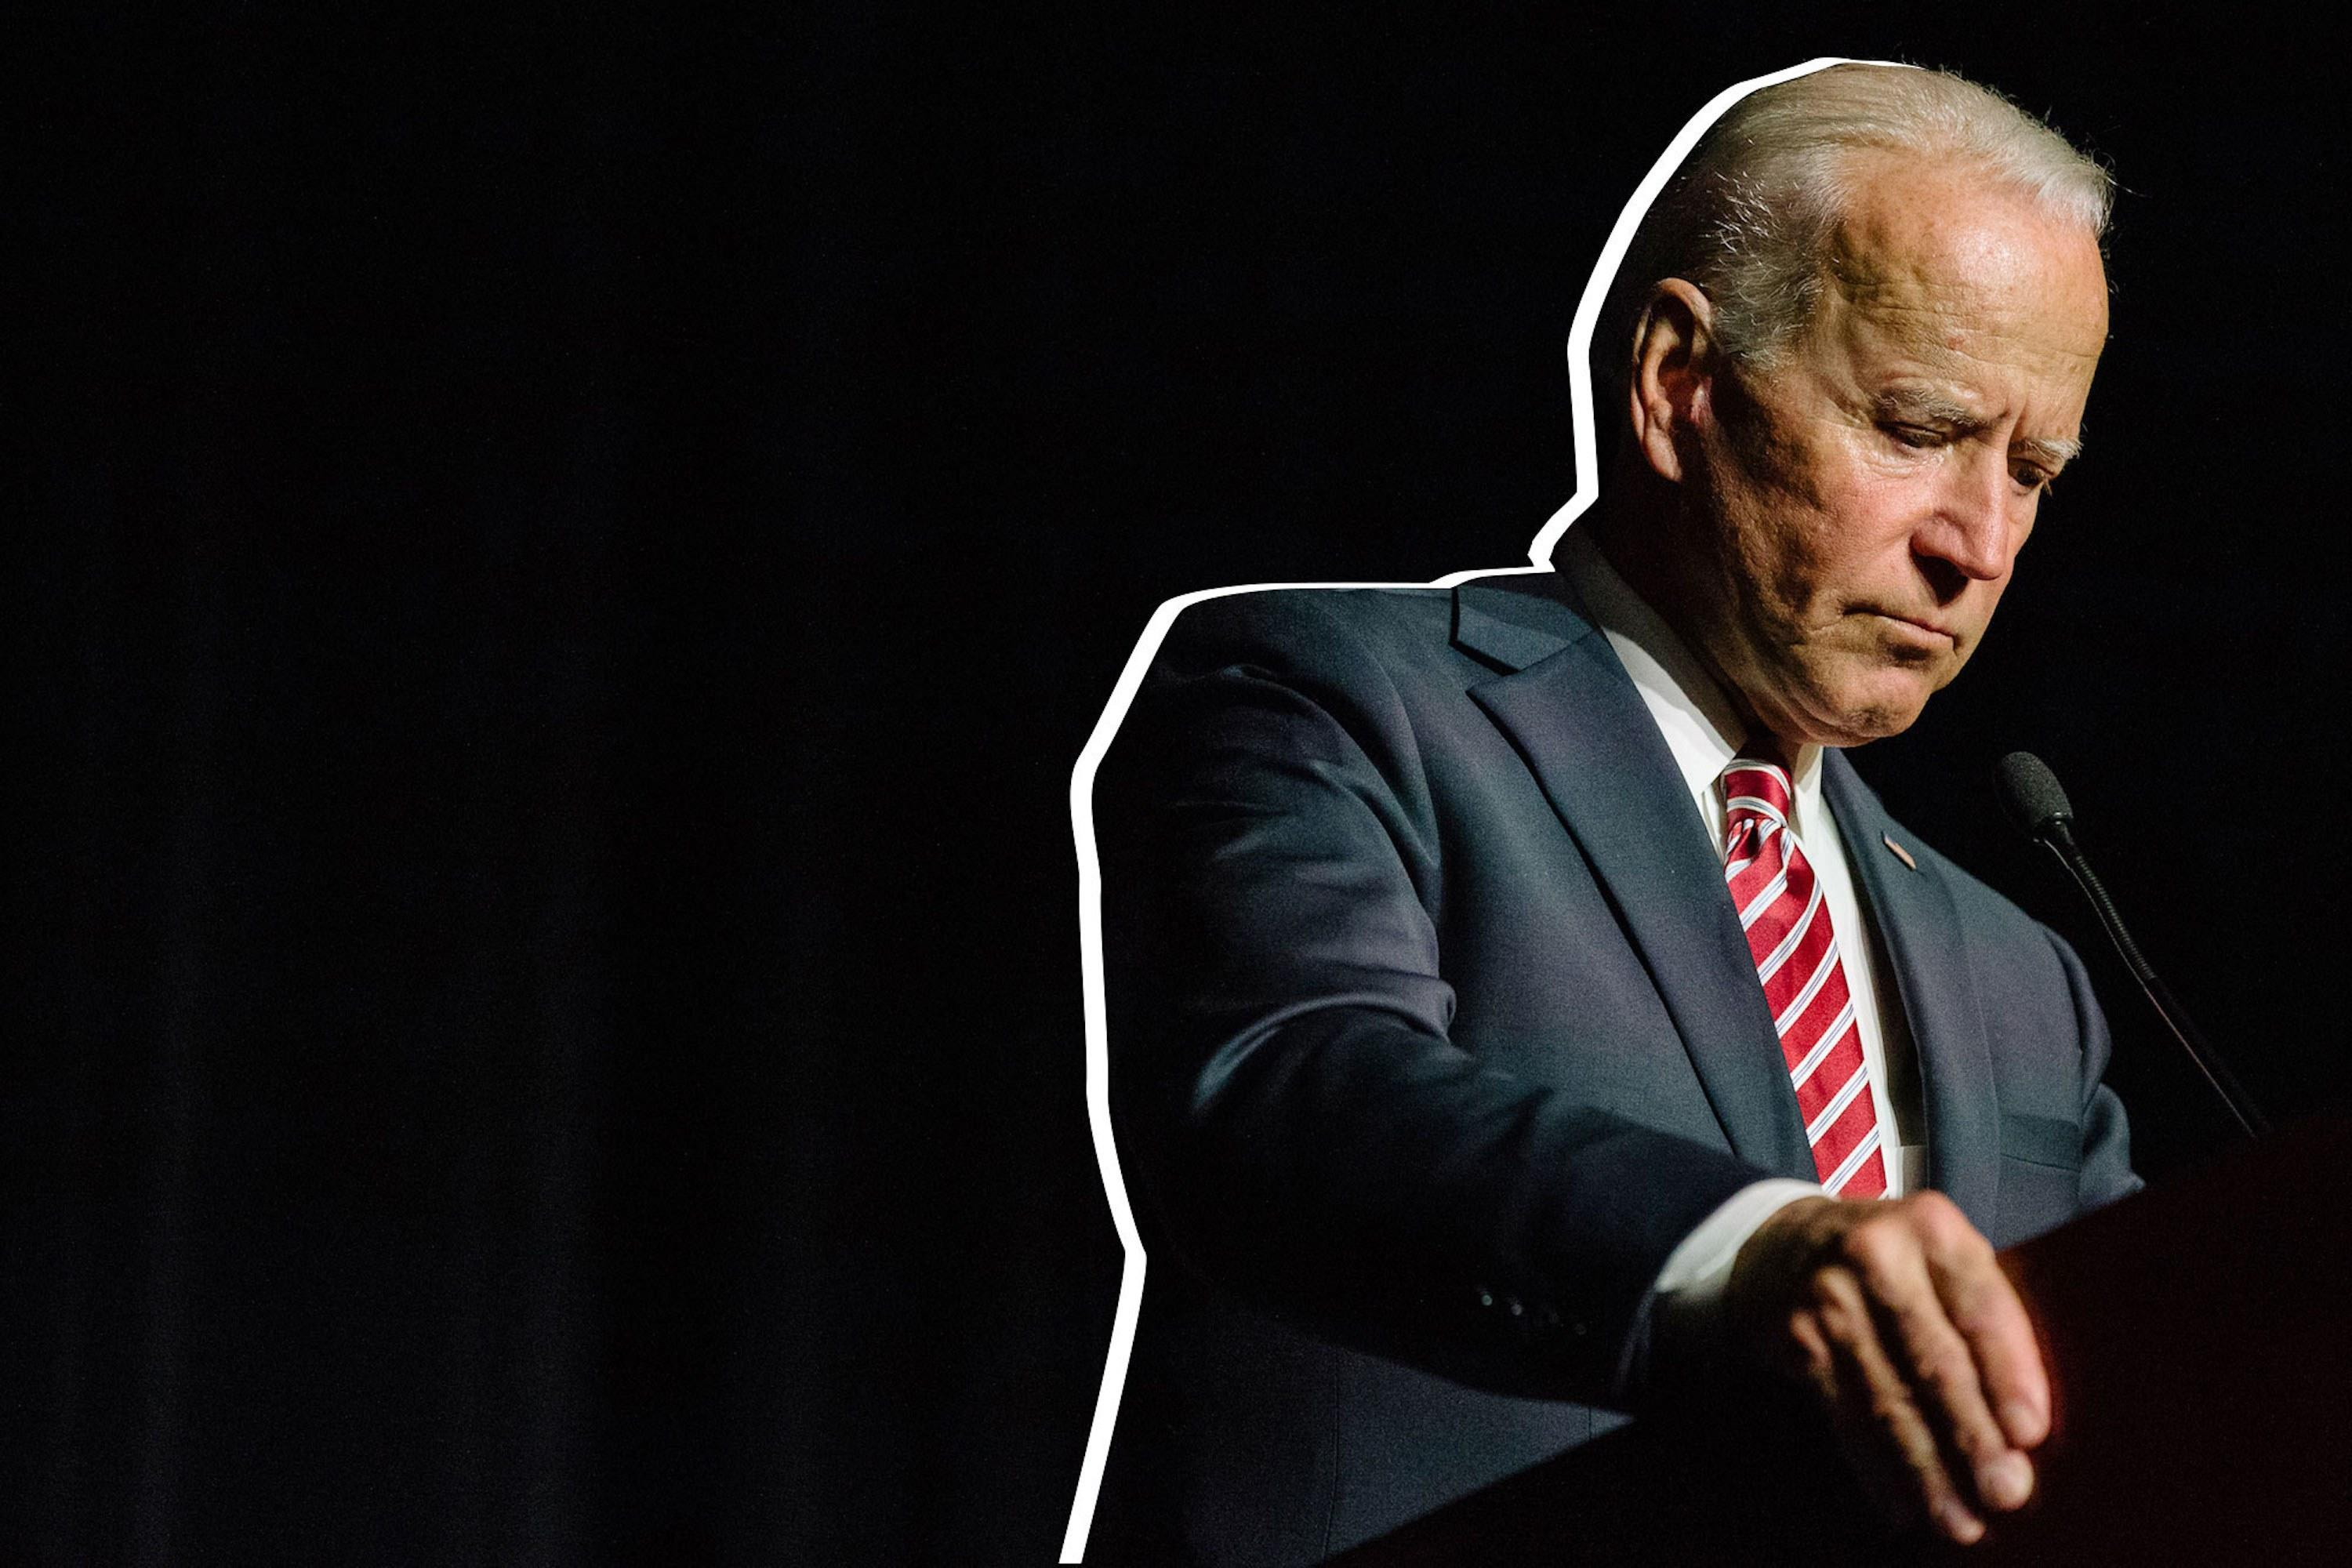 When Men Like Joe Biden Conflate Connection With Consent